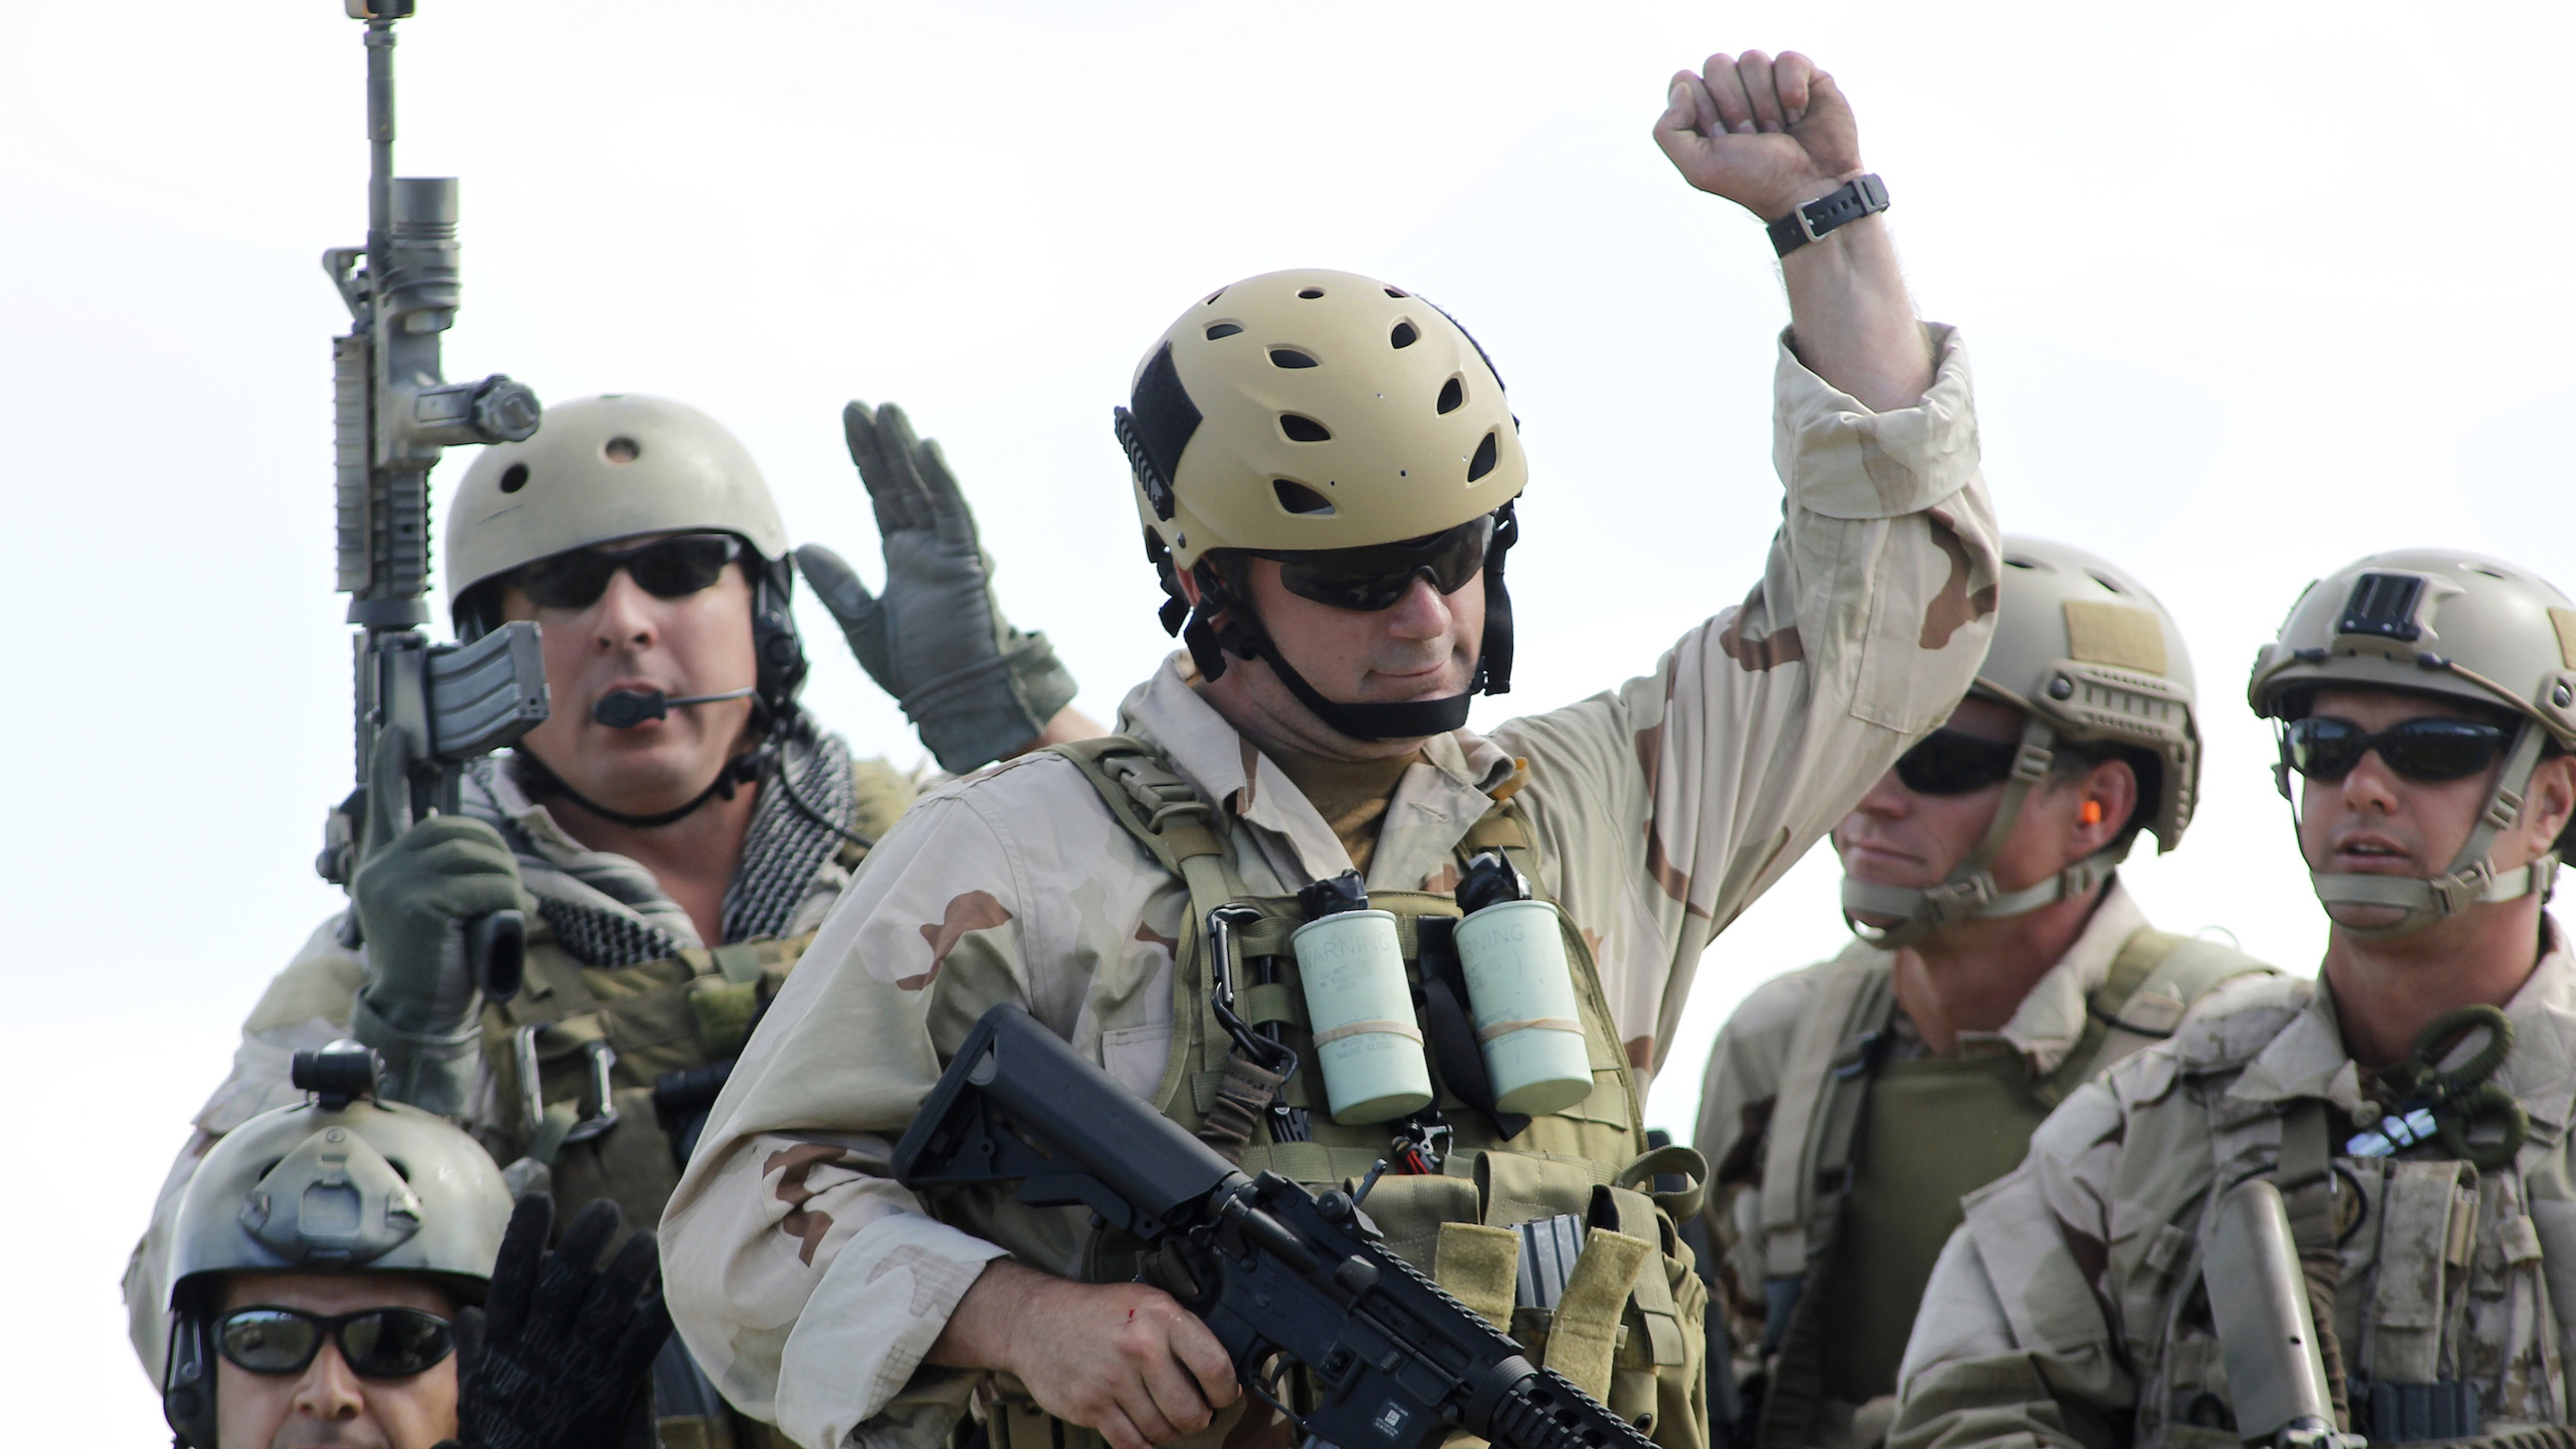 US Navy SEALs approach fear practically, almost scientifically.